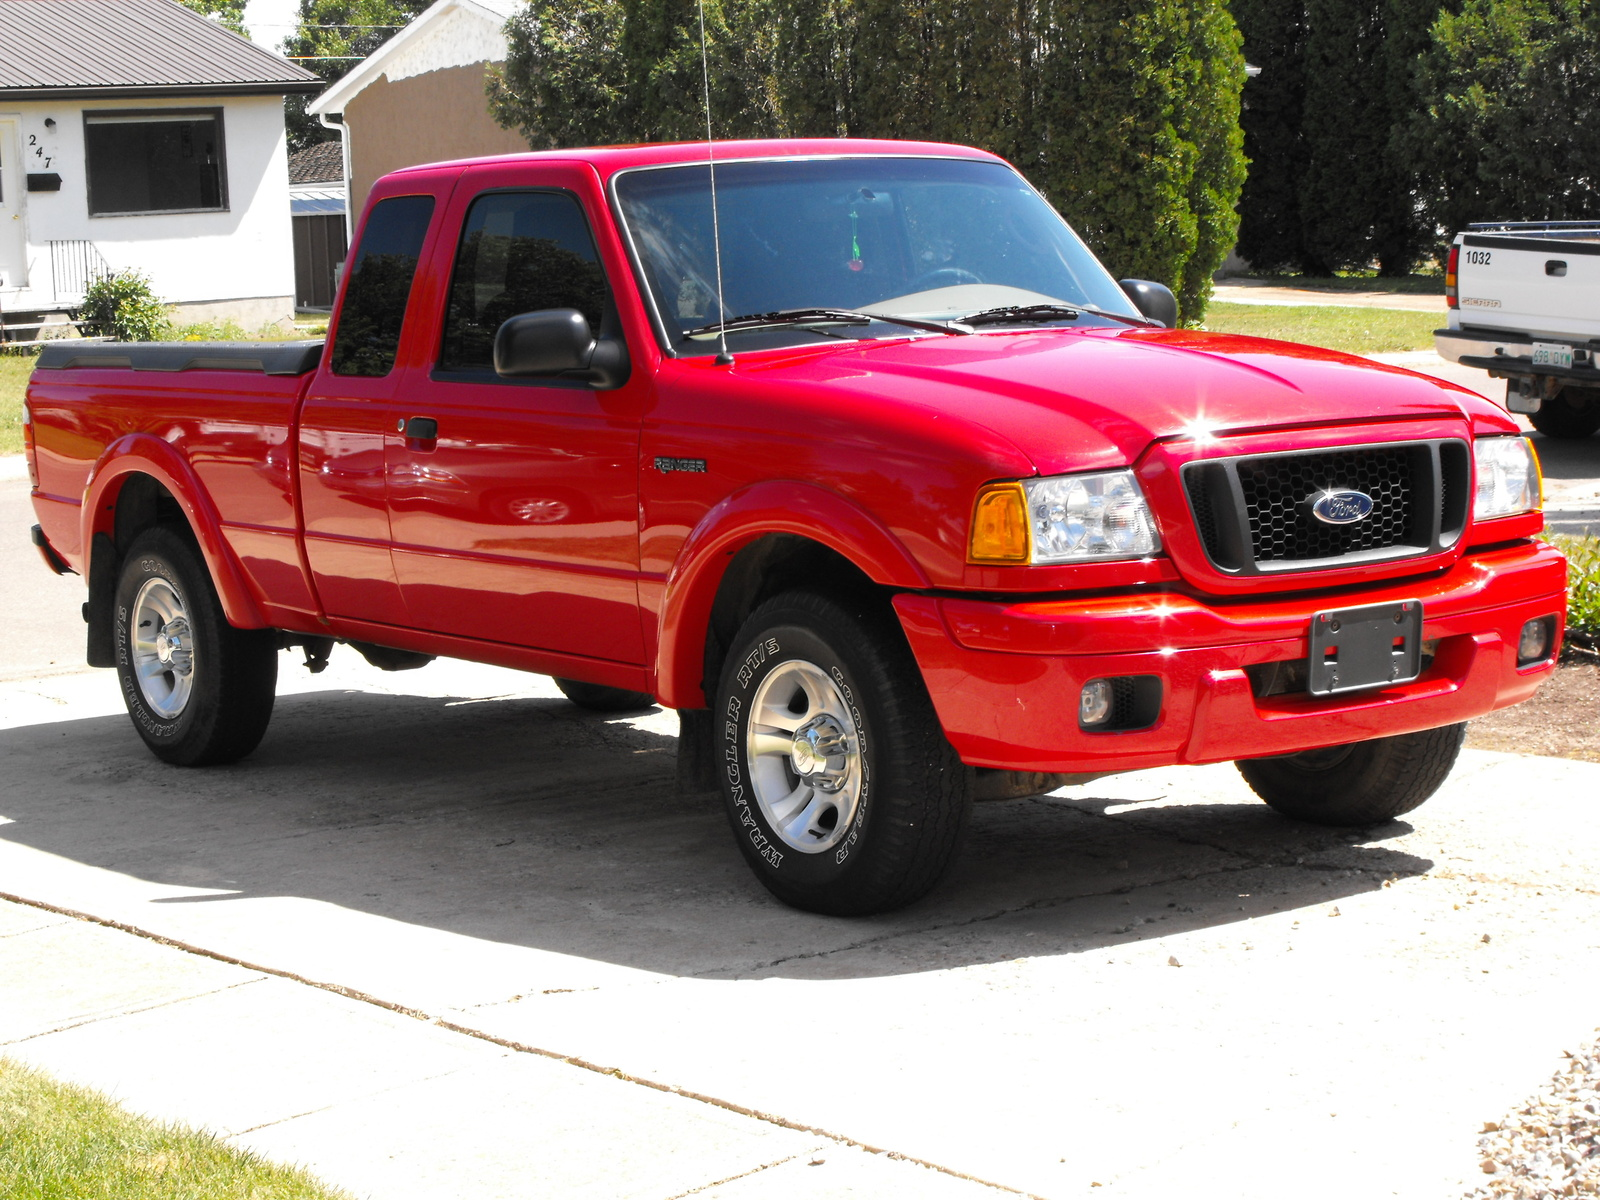 Picture of 2004 Ford Ranger 4 Dr Edge Extended Cab SB